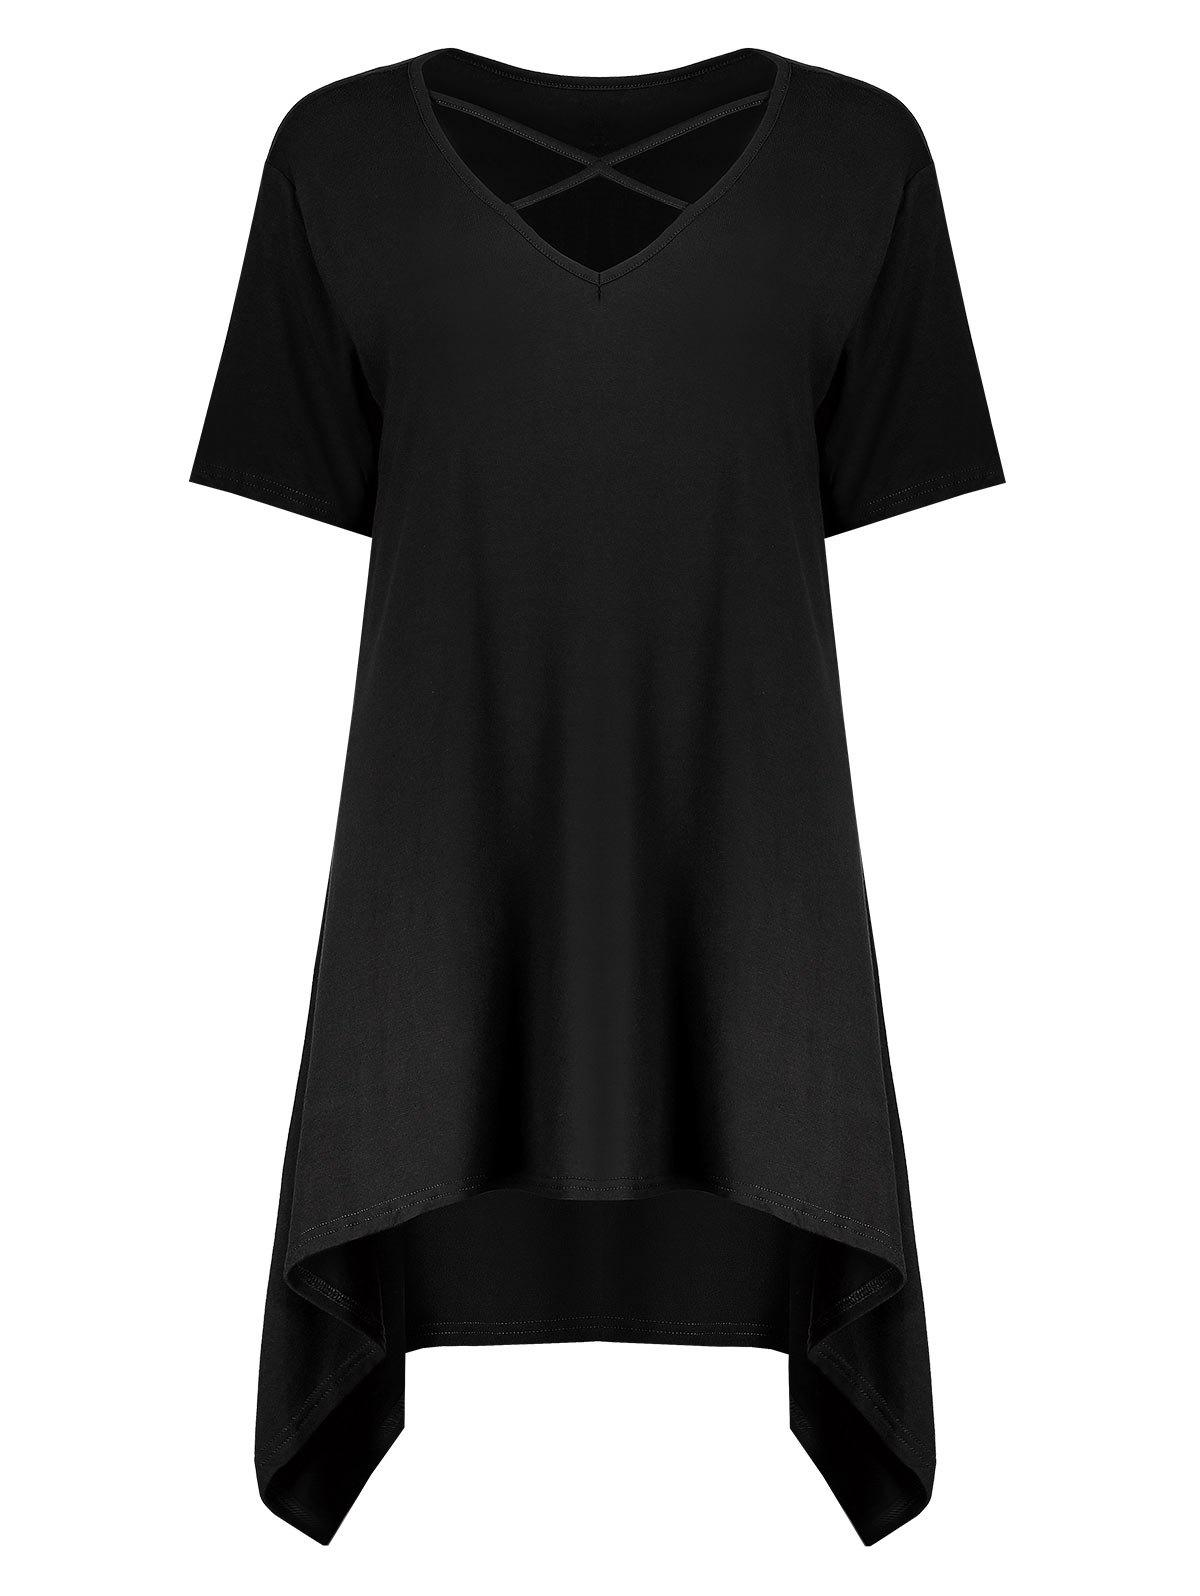 Plus Size Criss Cross Long Swing Cutout T-ShirtWOMEN<br><br>Size: 2XL; Color: BLACK; Material: Cotton,Cotton Blends,Polyester; Shirt Length: Long; Sleeve Length: Short; Collar: V-Neck; Style: Casual; Season: Spring,Summer; Embellishment: Hollow Out; Pattern Type: Solid; Weight: 0.3500kg; Package Contents: 1 x Tee;